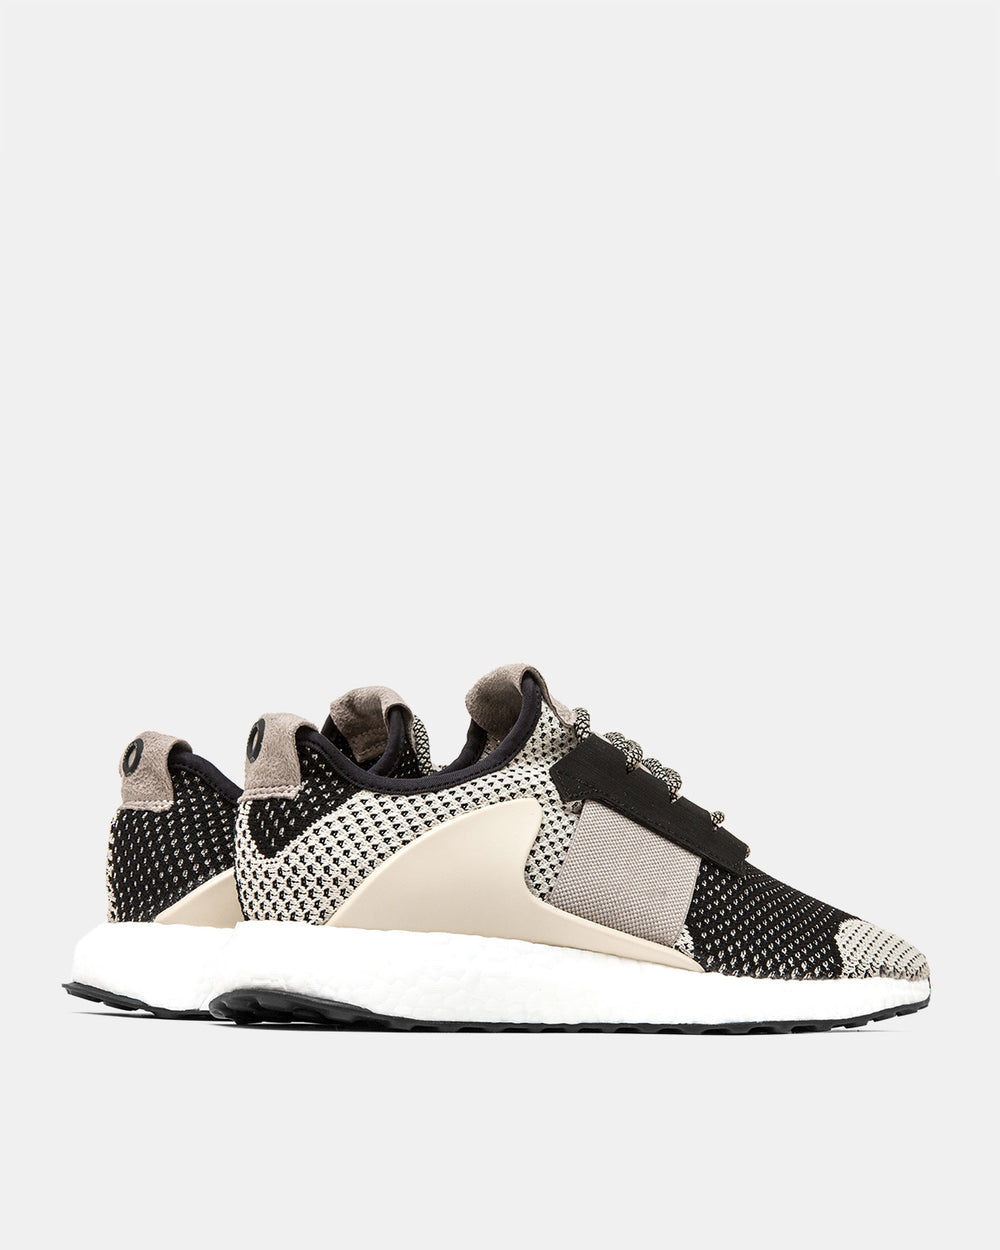 adidas - Day One Ultra Boost ZG (Clear Brown | Light Brown)